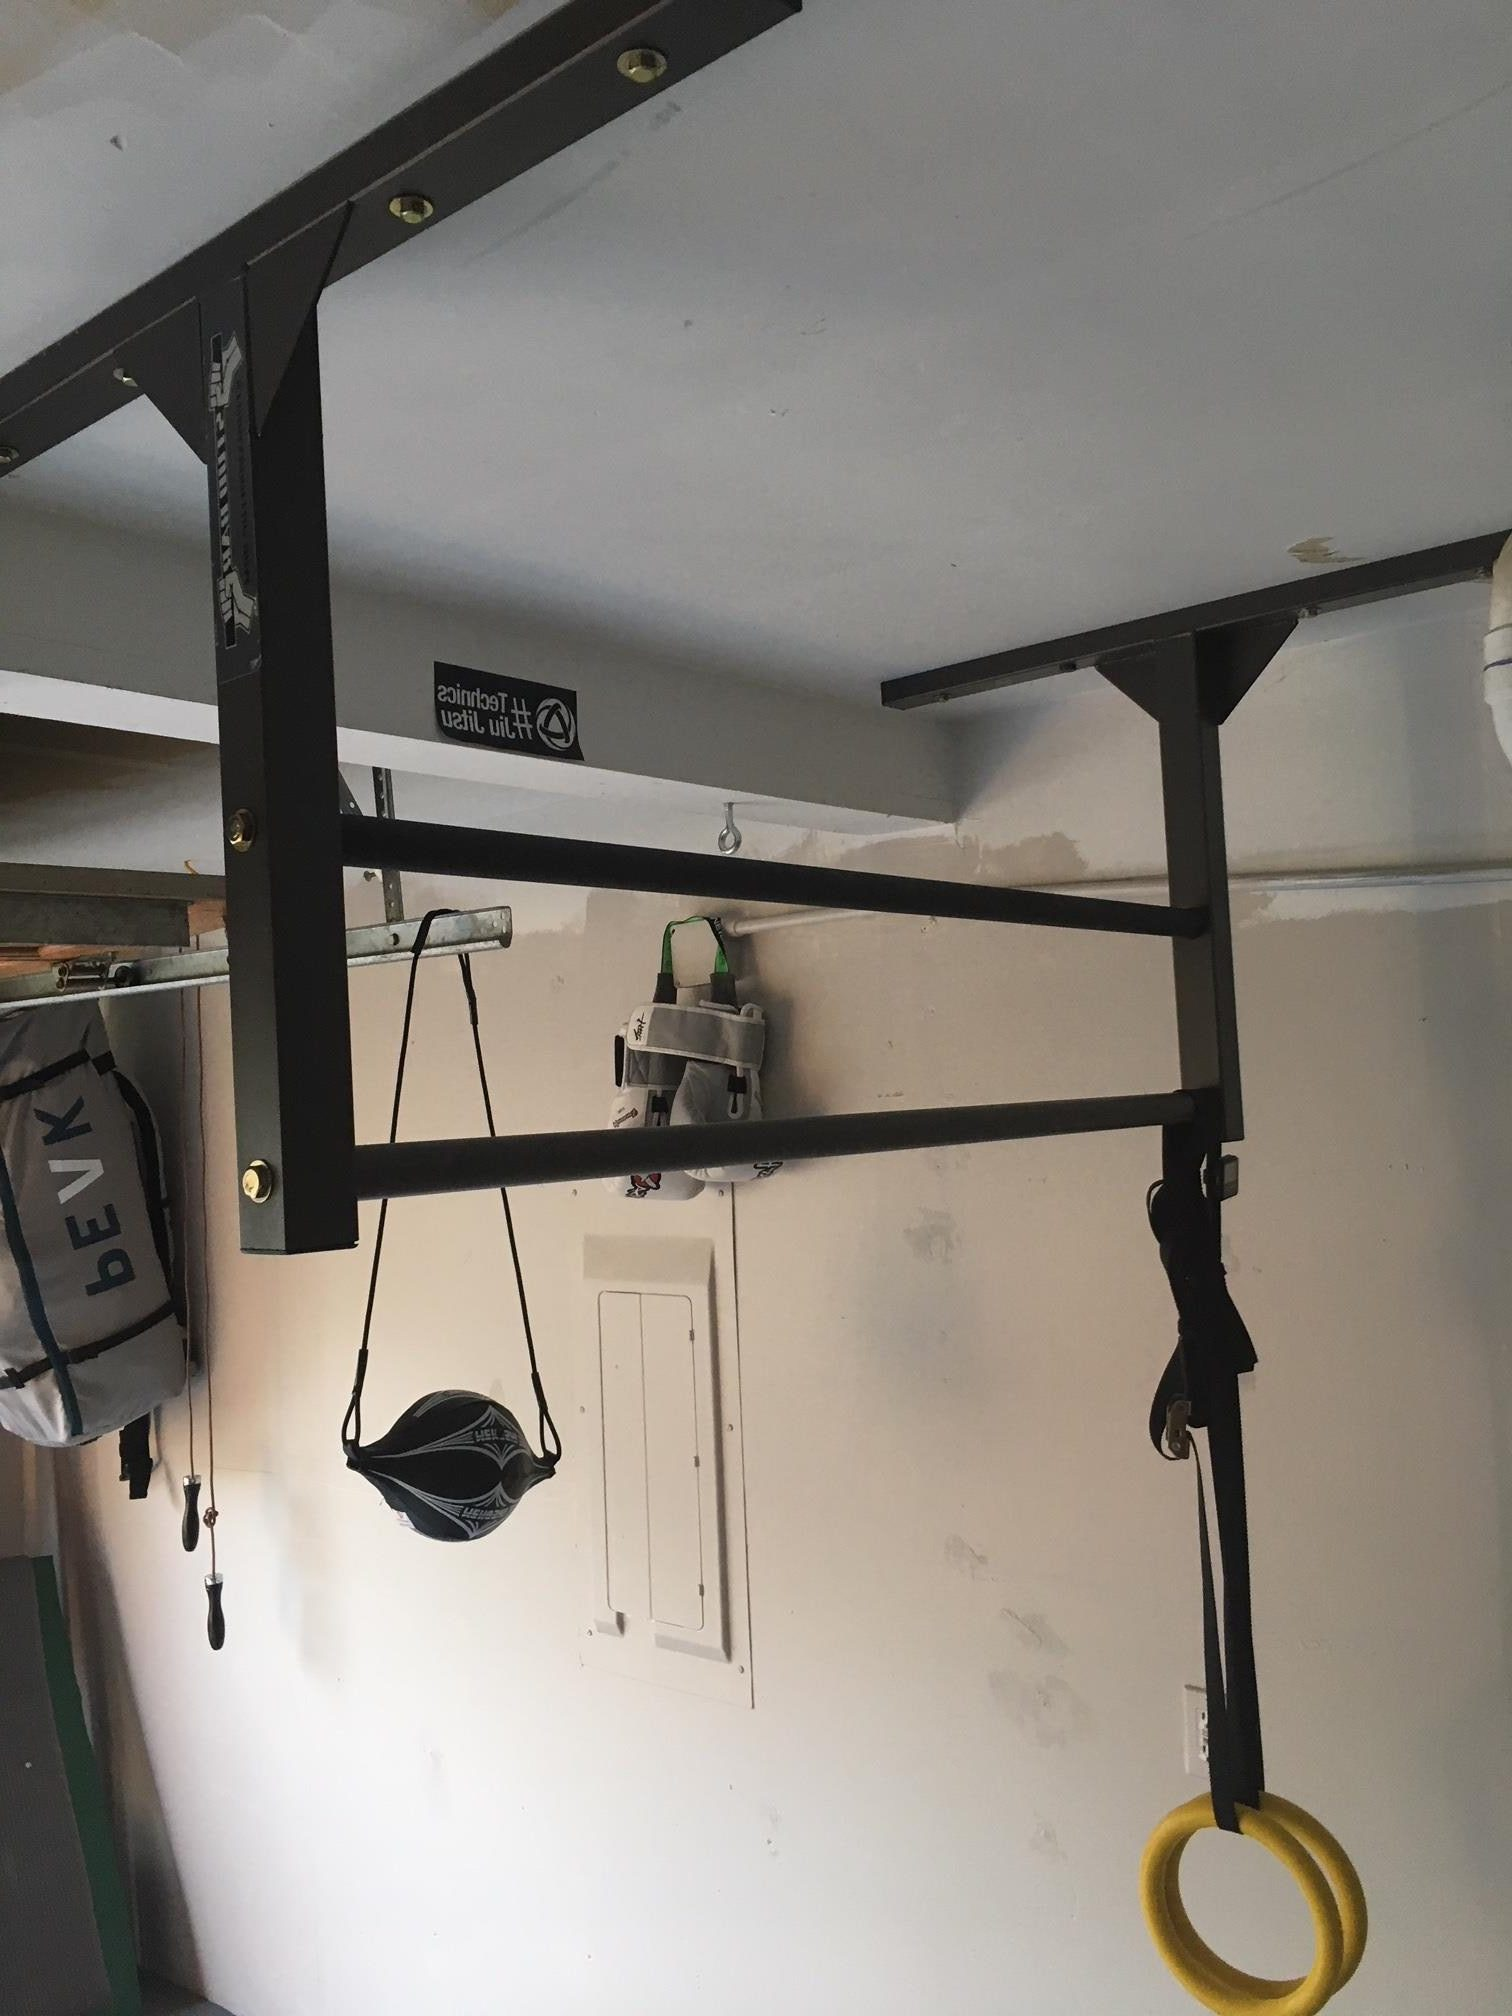 Genial Double Bar Pull Up Bar